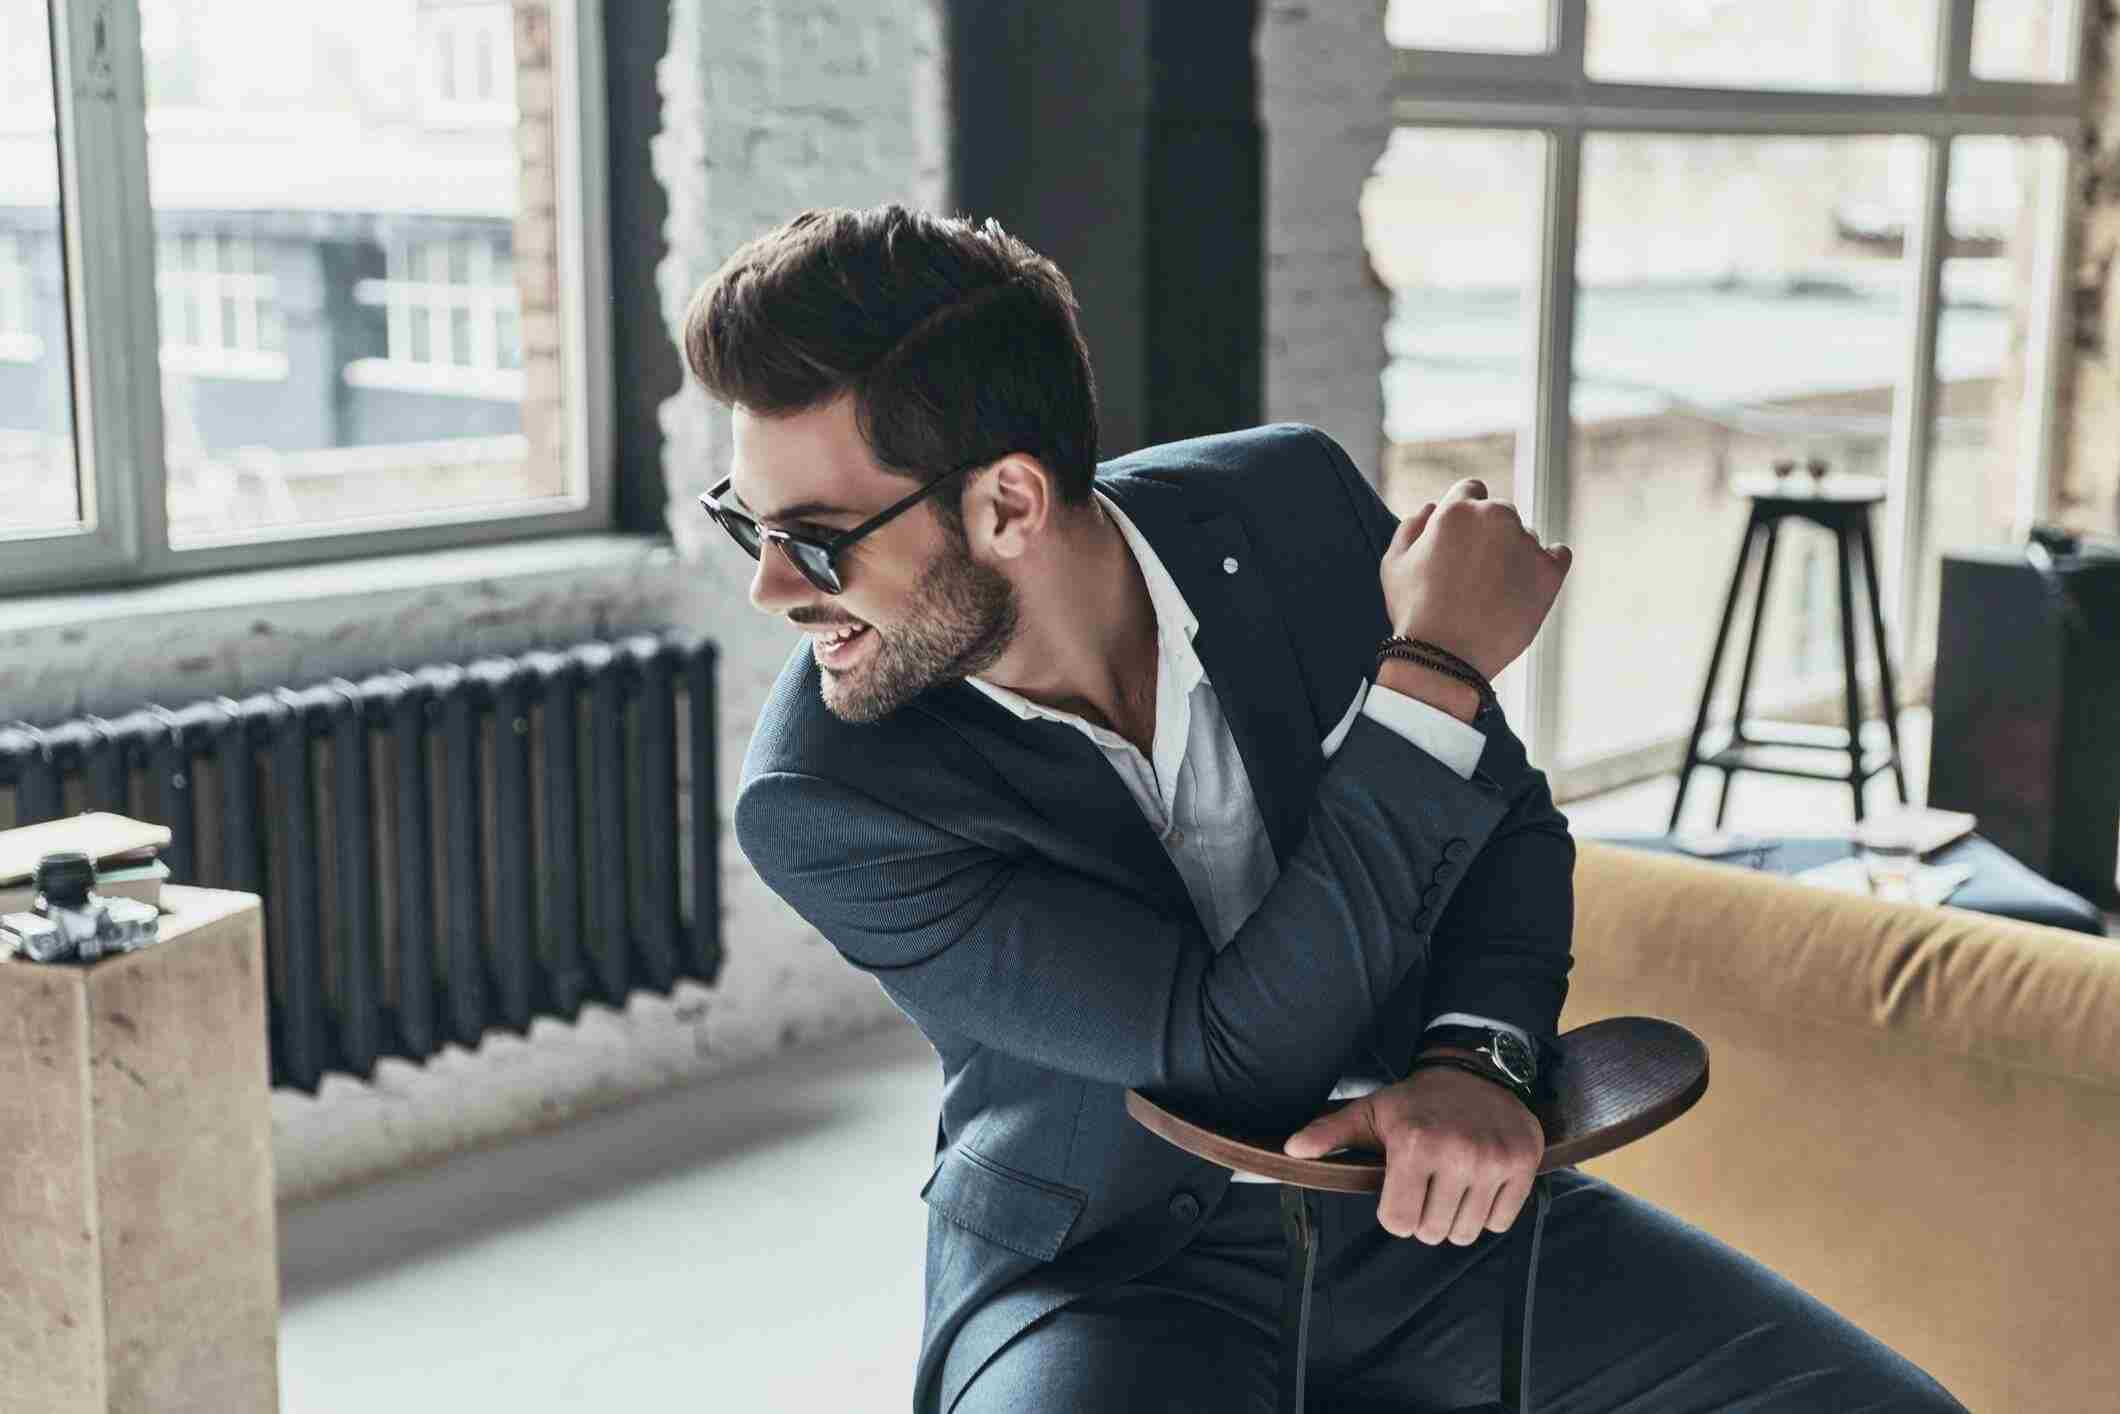 Men's clothing on display by a male model in black shades and playful mood